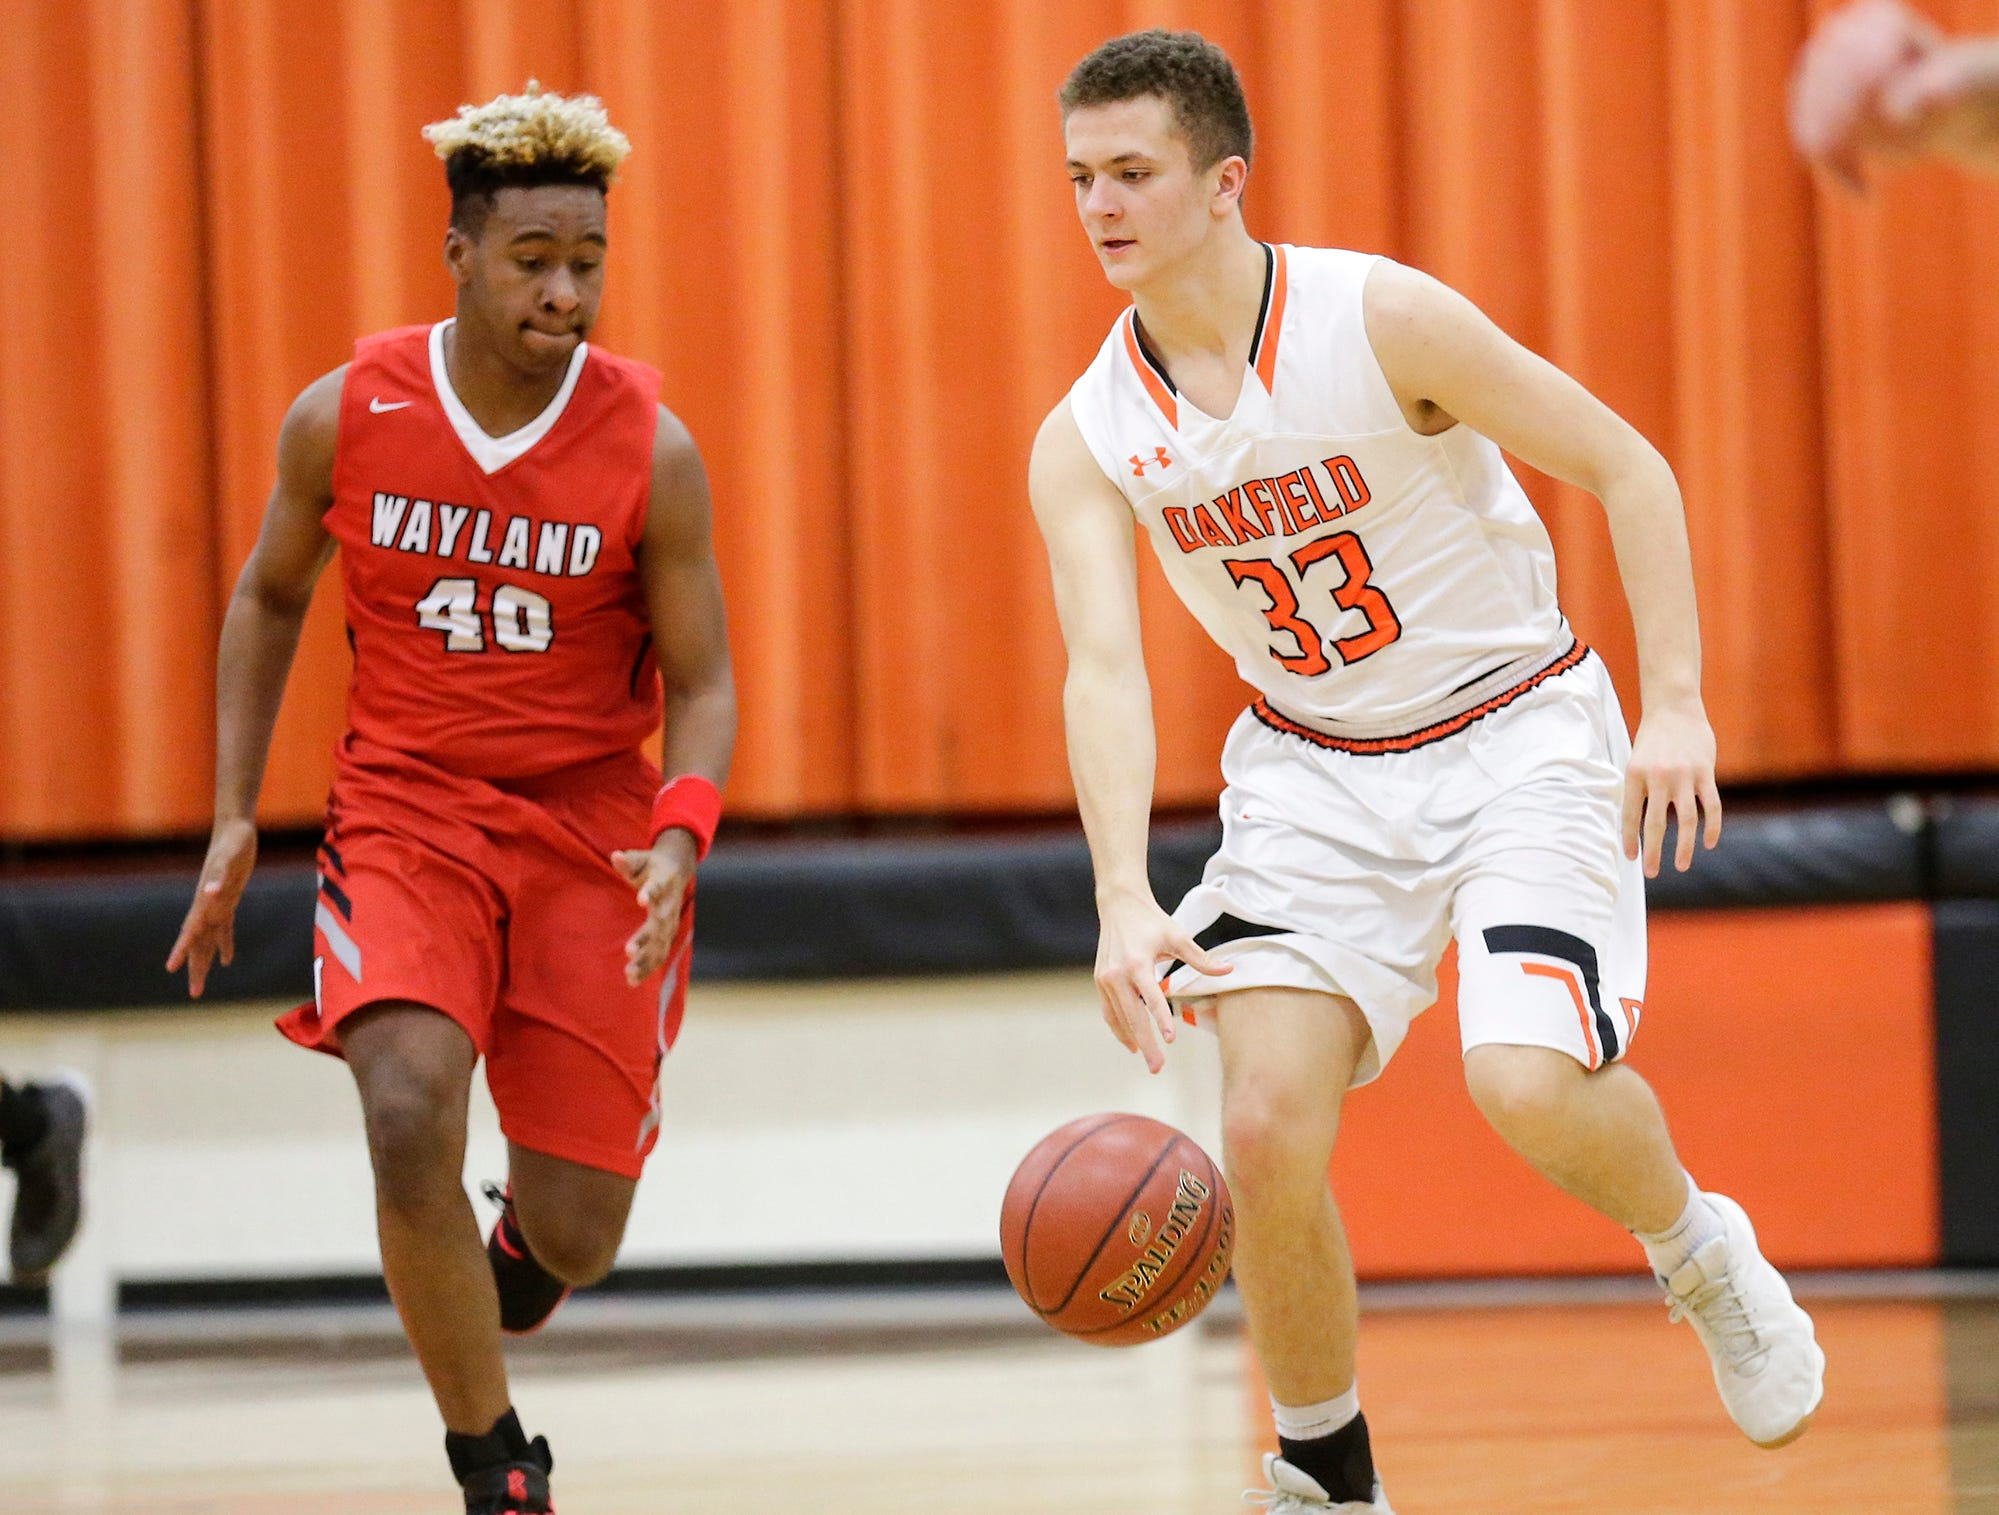 Oakfield High School boys basketball's Bart Bijl works his way down court against Wayland Academy's Mark Todd January 11, 2019 during their game in Oakfield. Oakfield won the game 56-48. Doug Raflik/USA TODAY NETWORK-Wisconsin